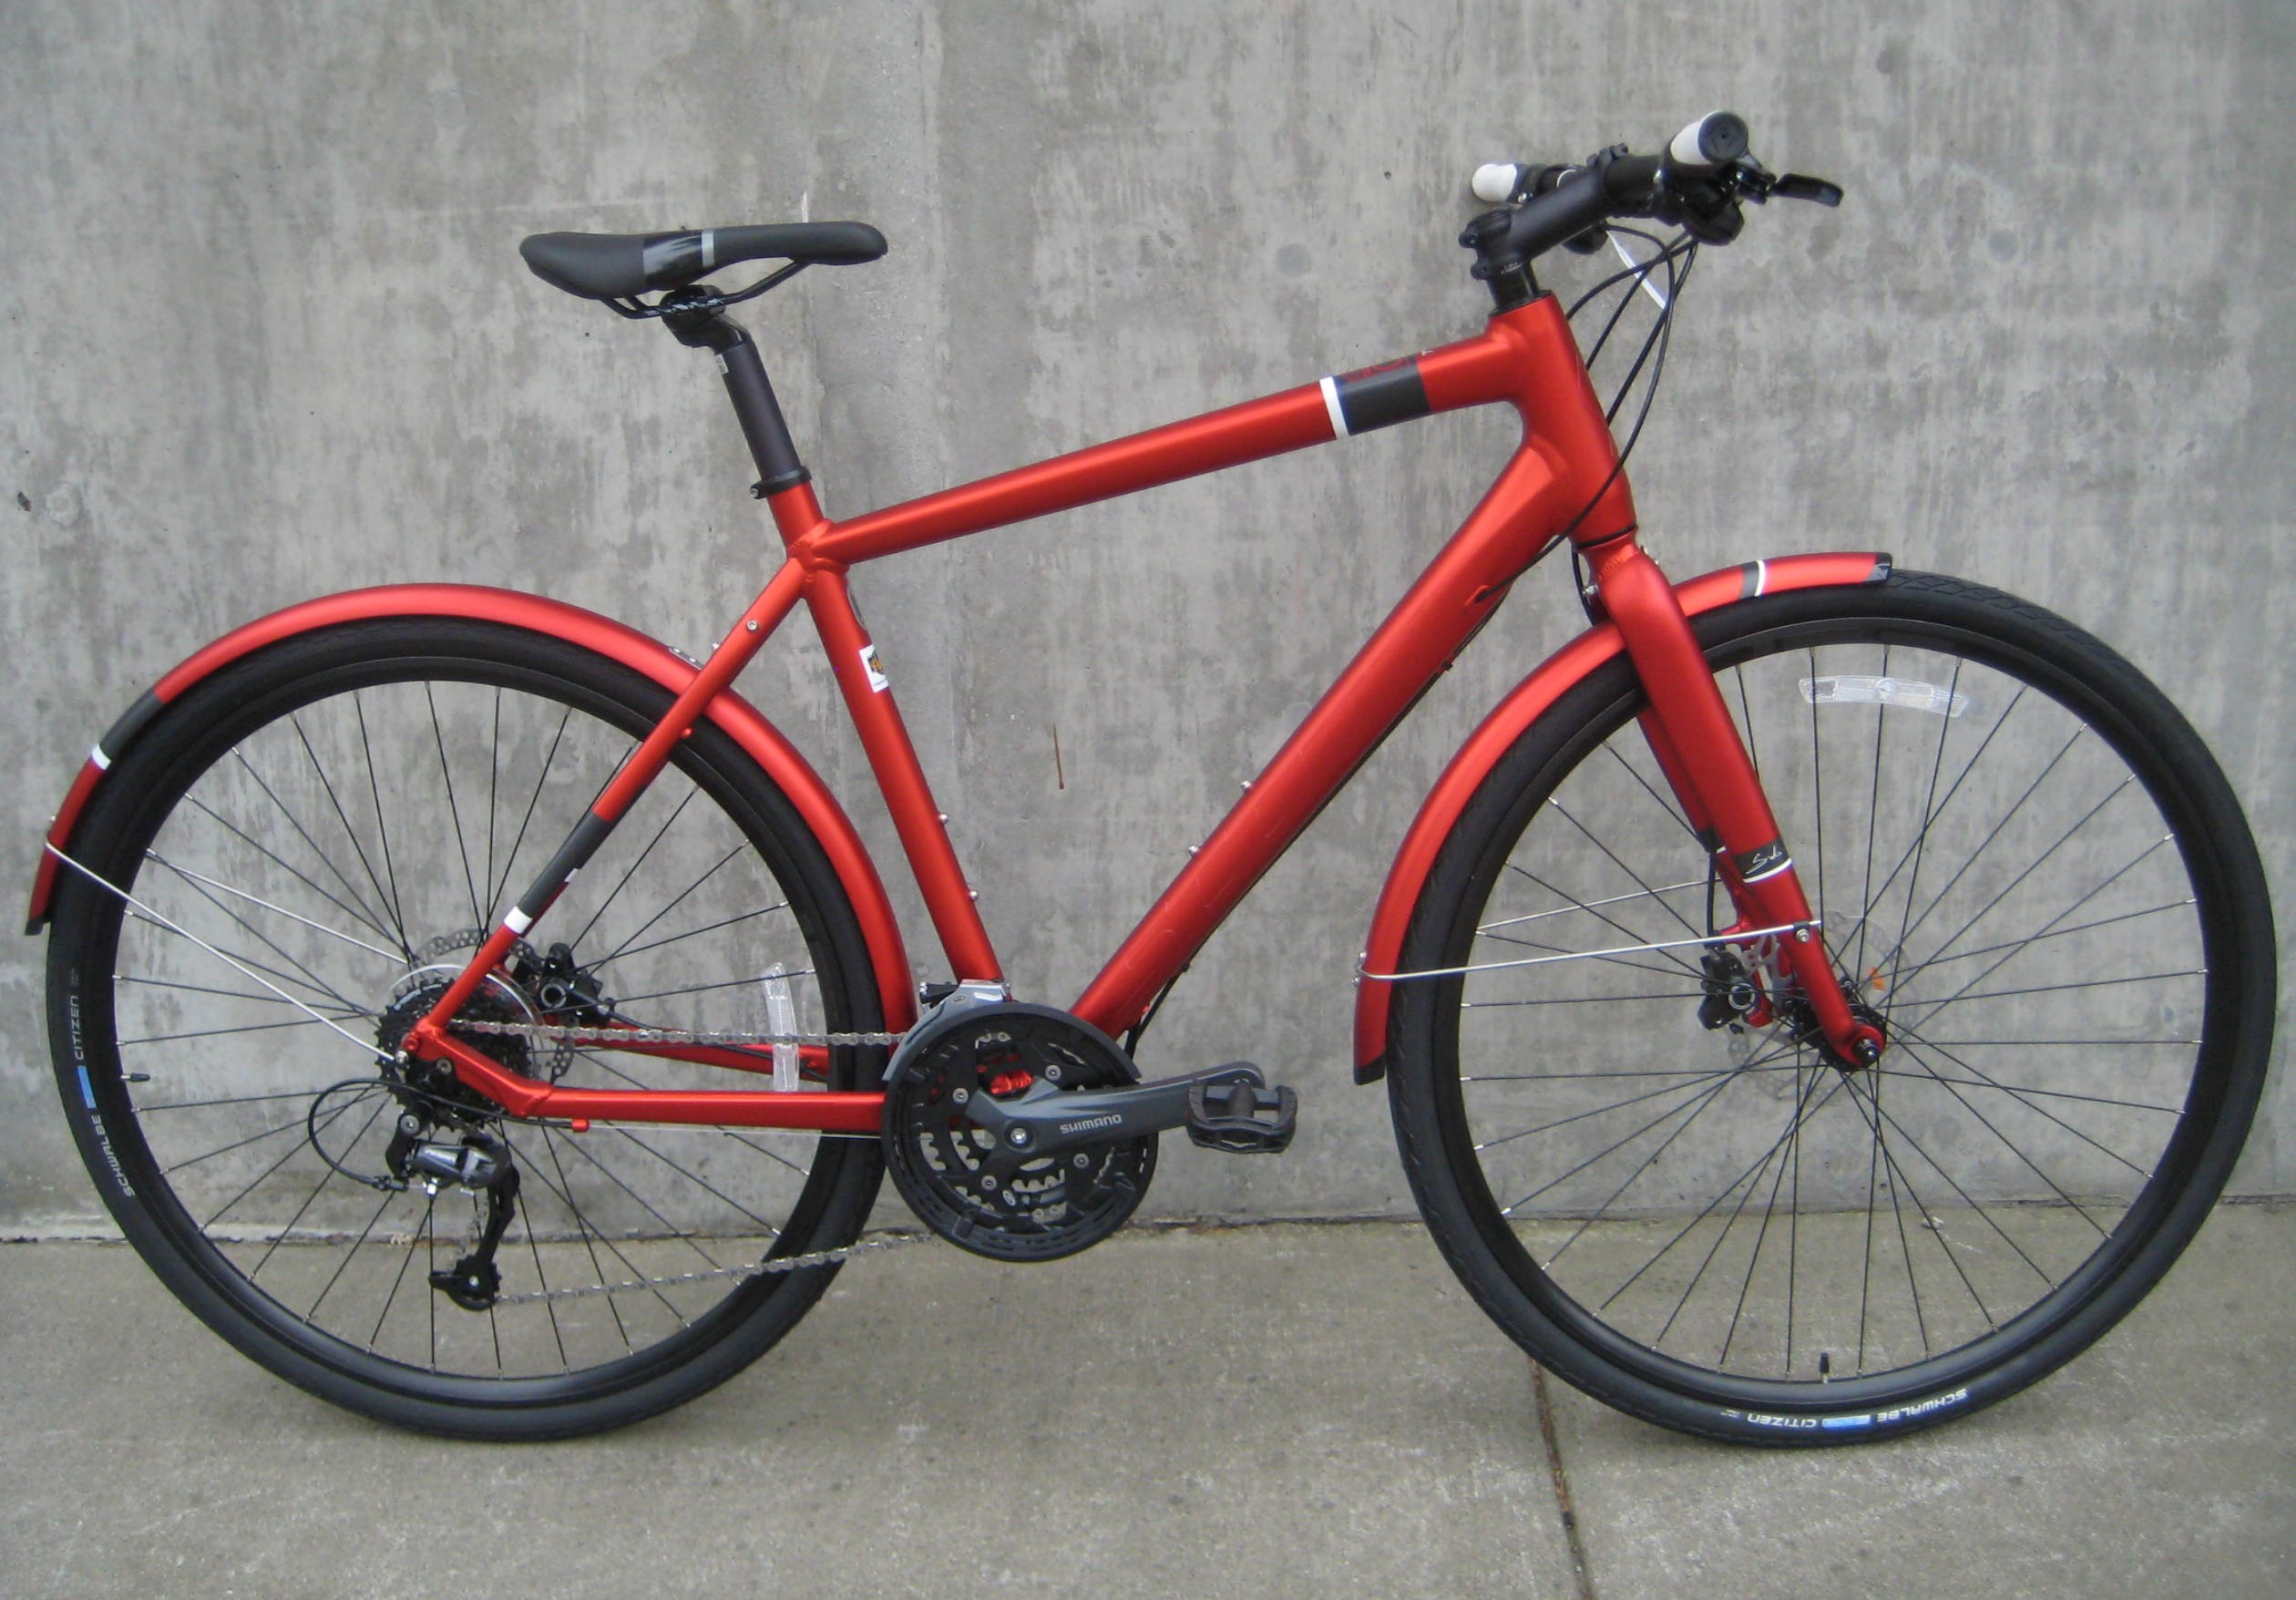 Hybrid Scott Classic Cycle Bainbridge Island Kitsap County